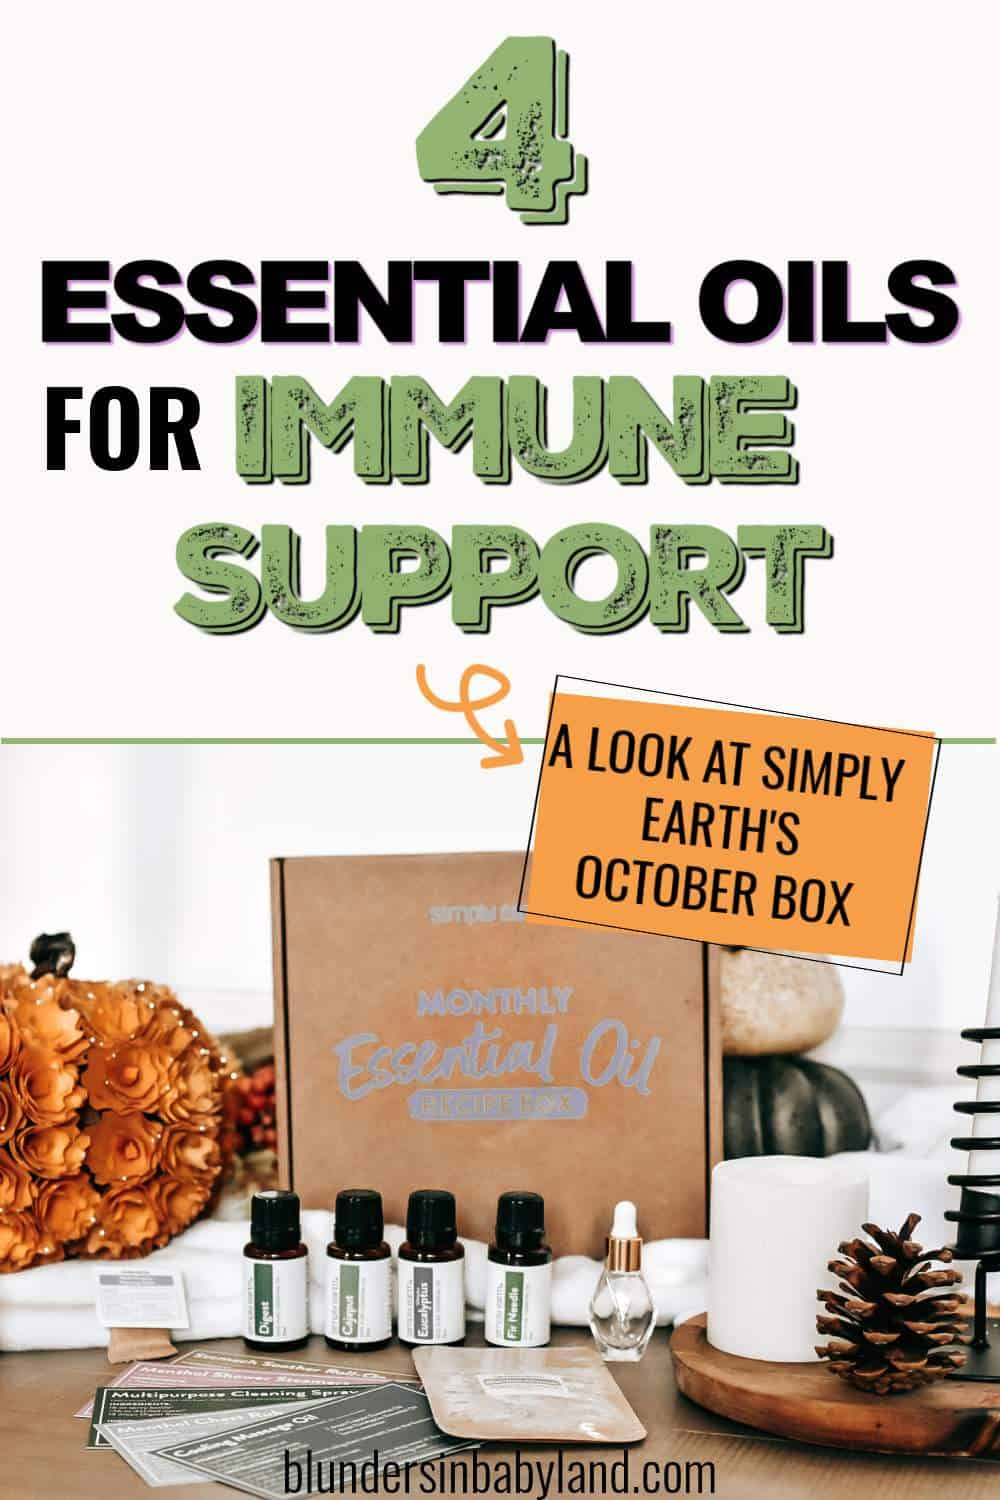 Simply Earth OCTOBER 2021 Recipe Box - Essential Oils for IMMUNE SUPPORT